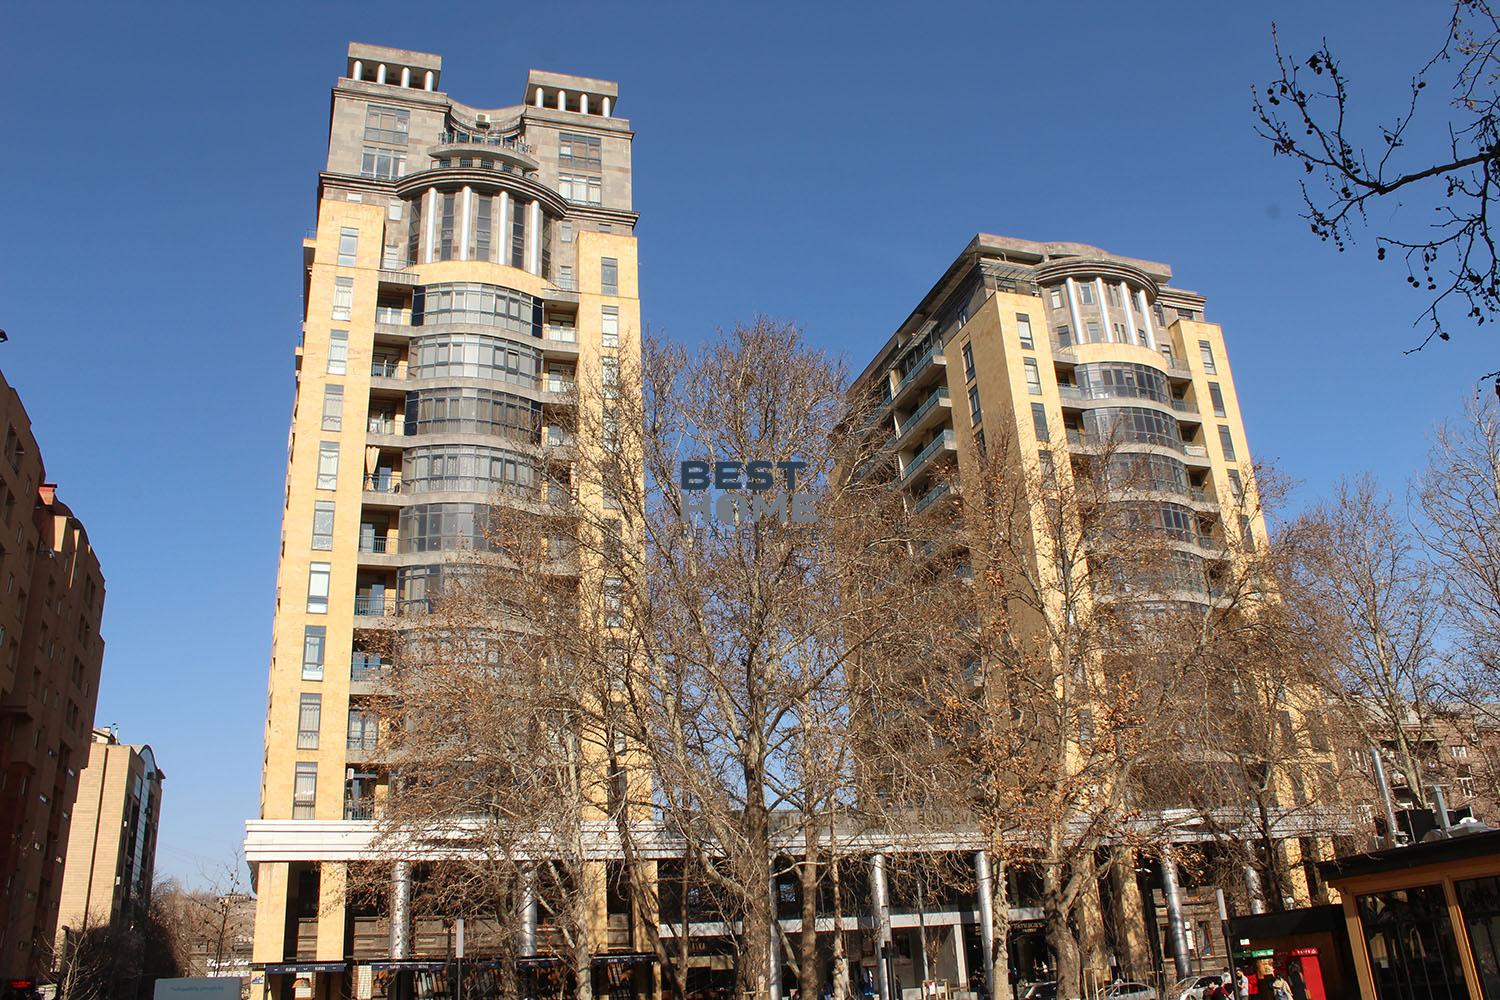 Buy or rent apartment on Aram street in a new building near the municipal park in a center of Yerevan. Real estate in Armenia, best property.